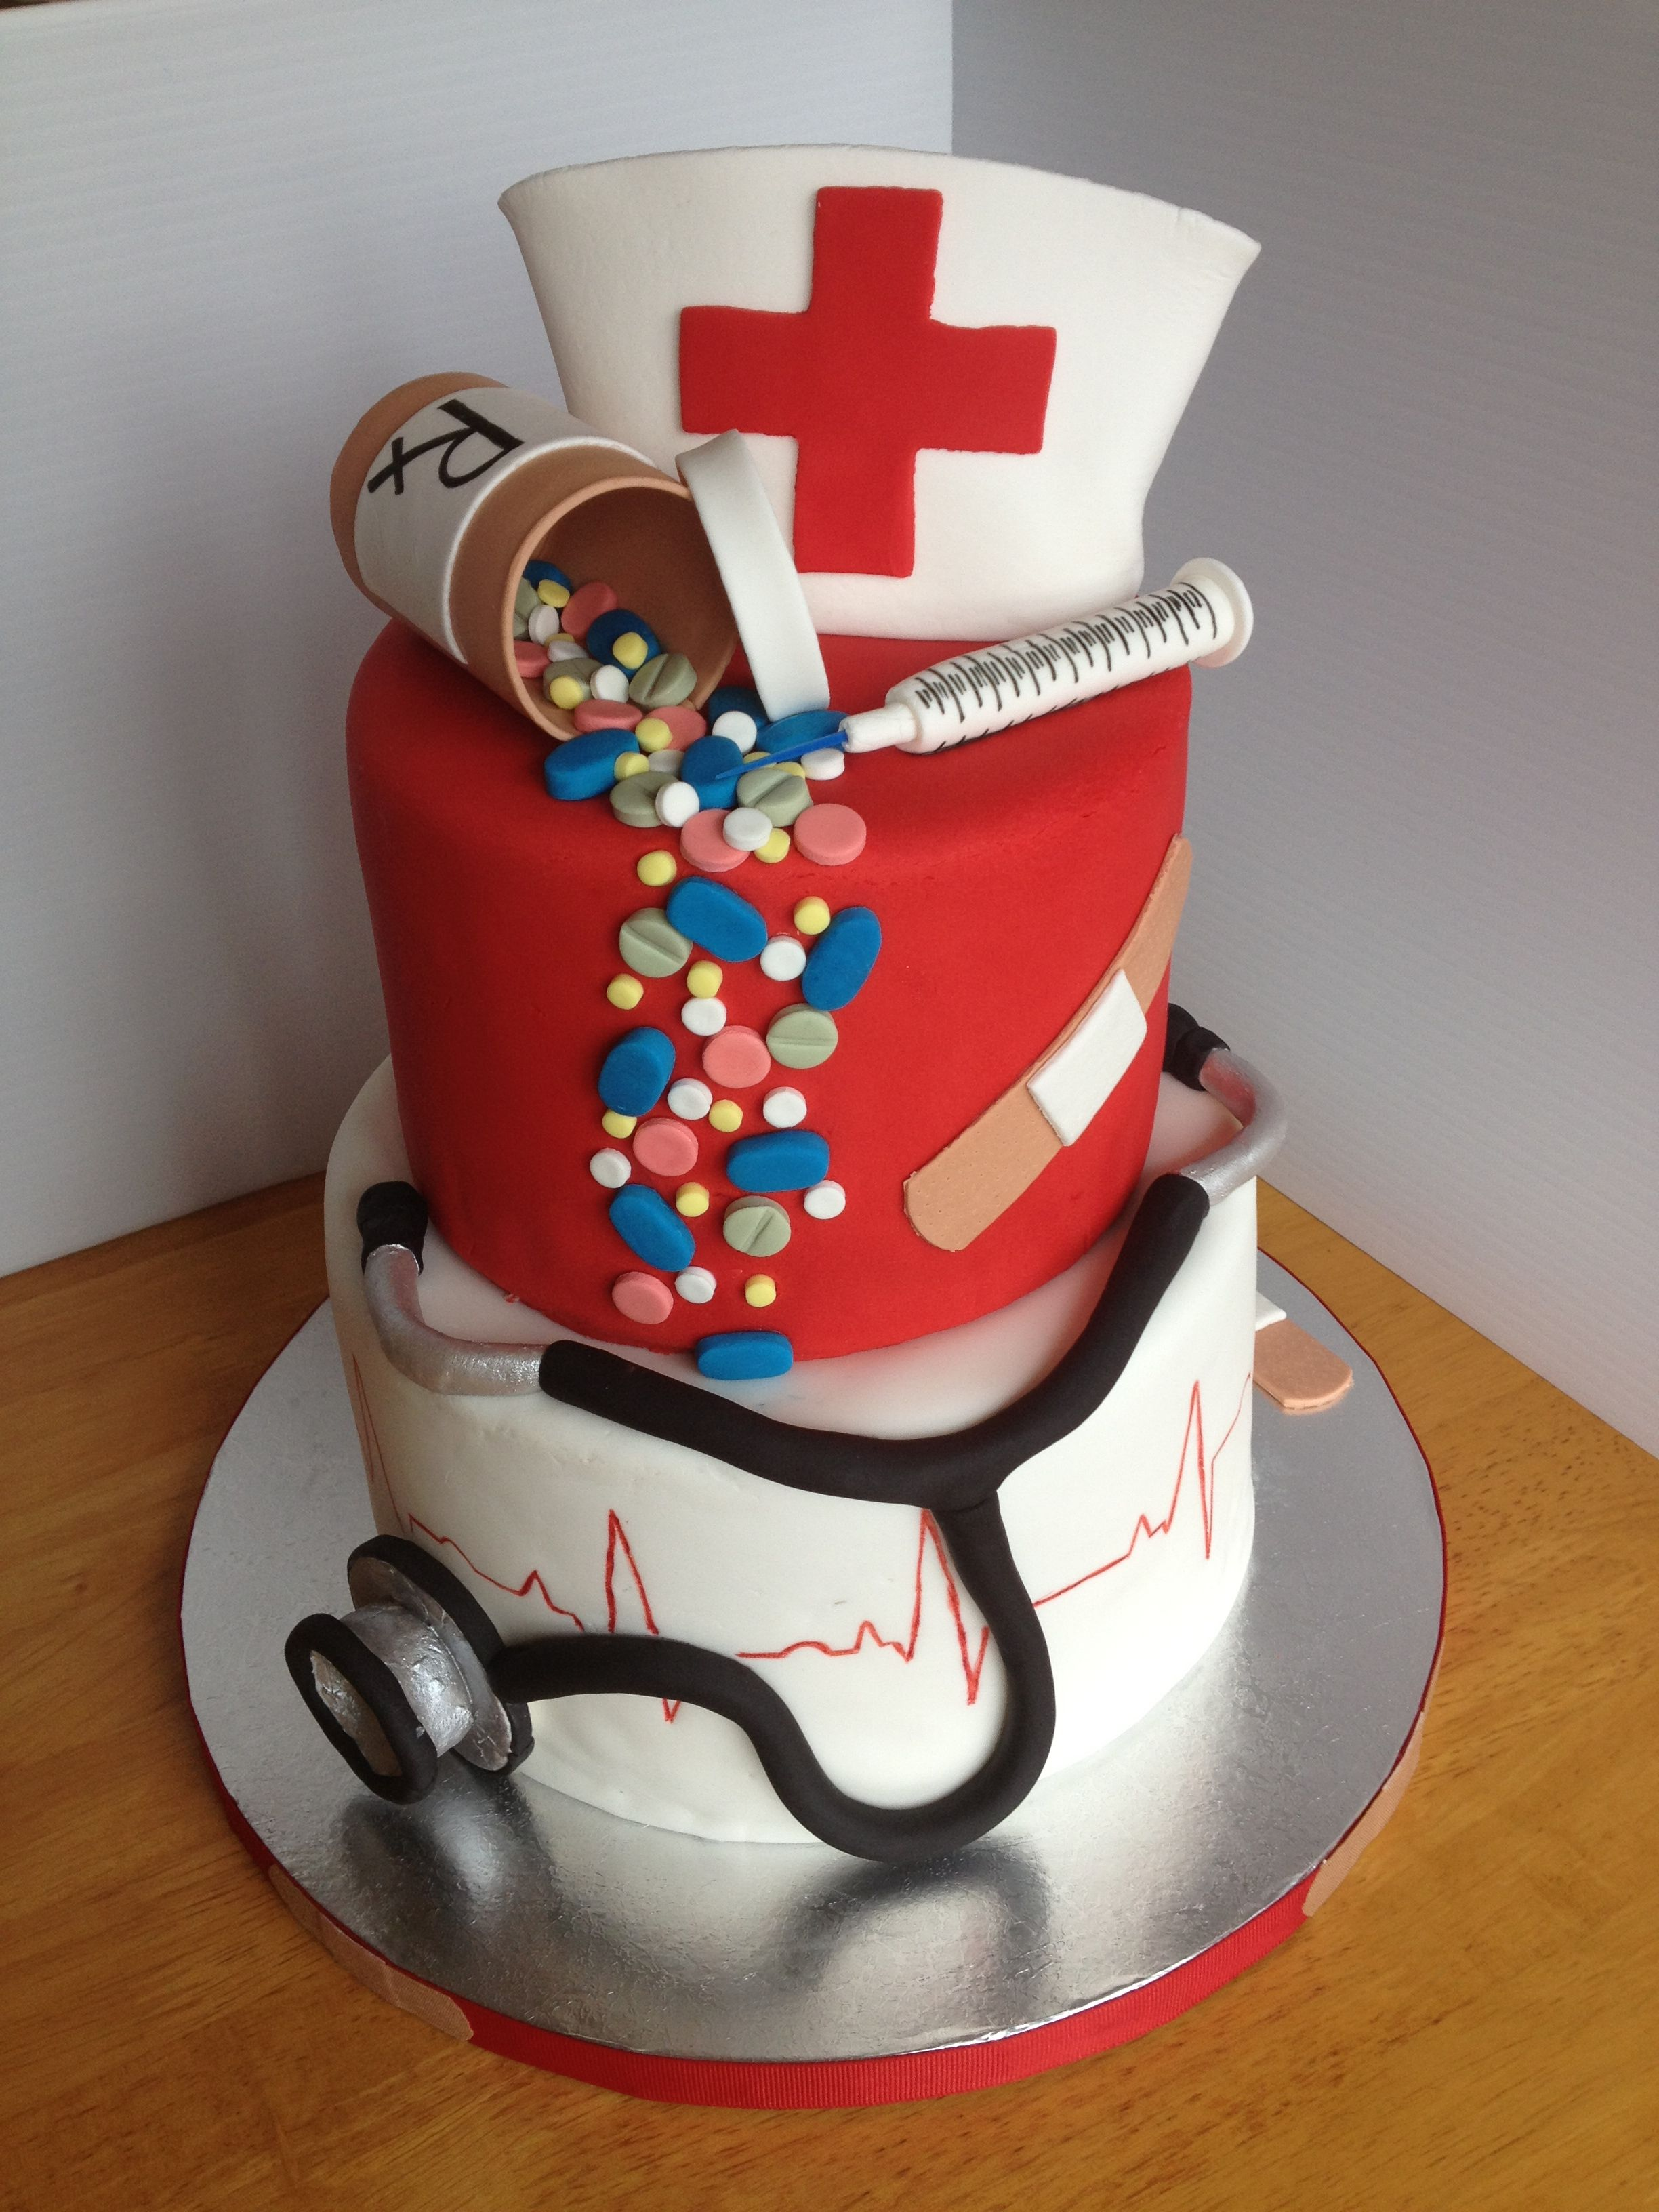 Graduate nursing school Treat yourself with this Cakes and